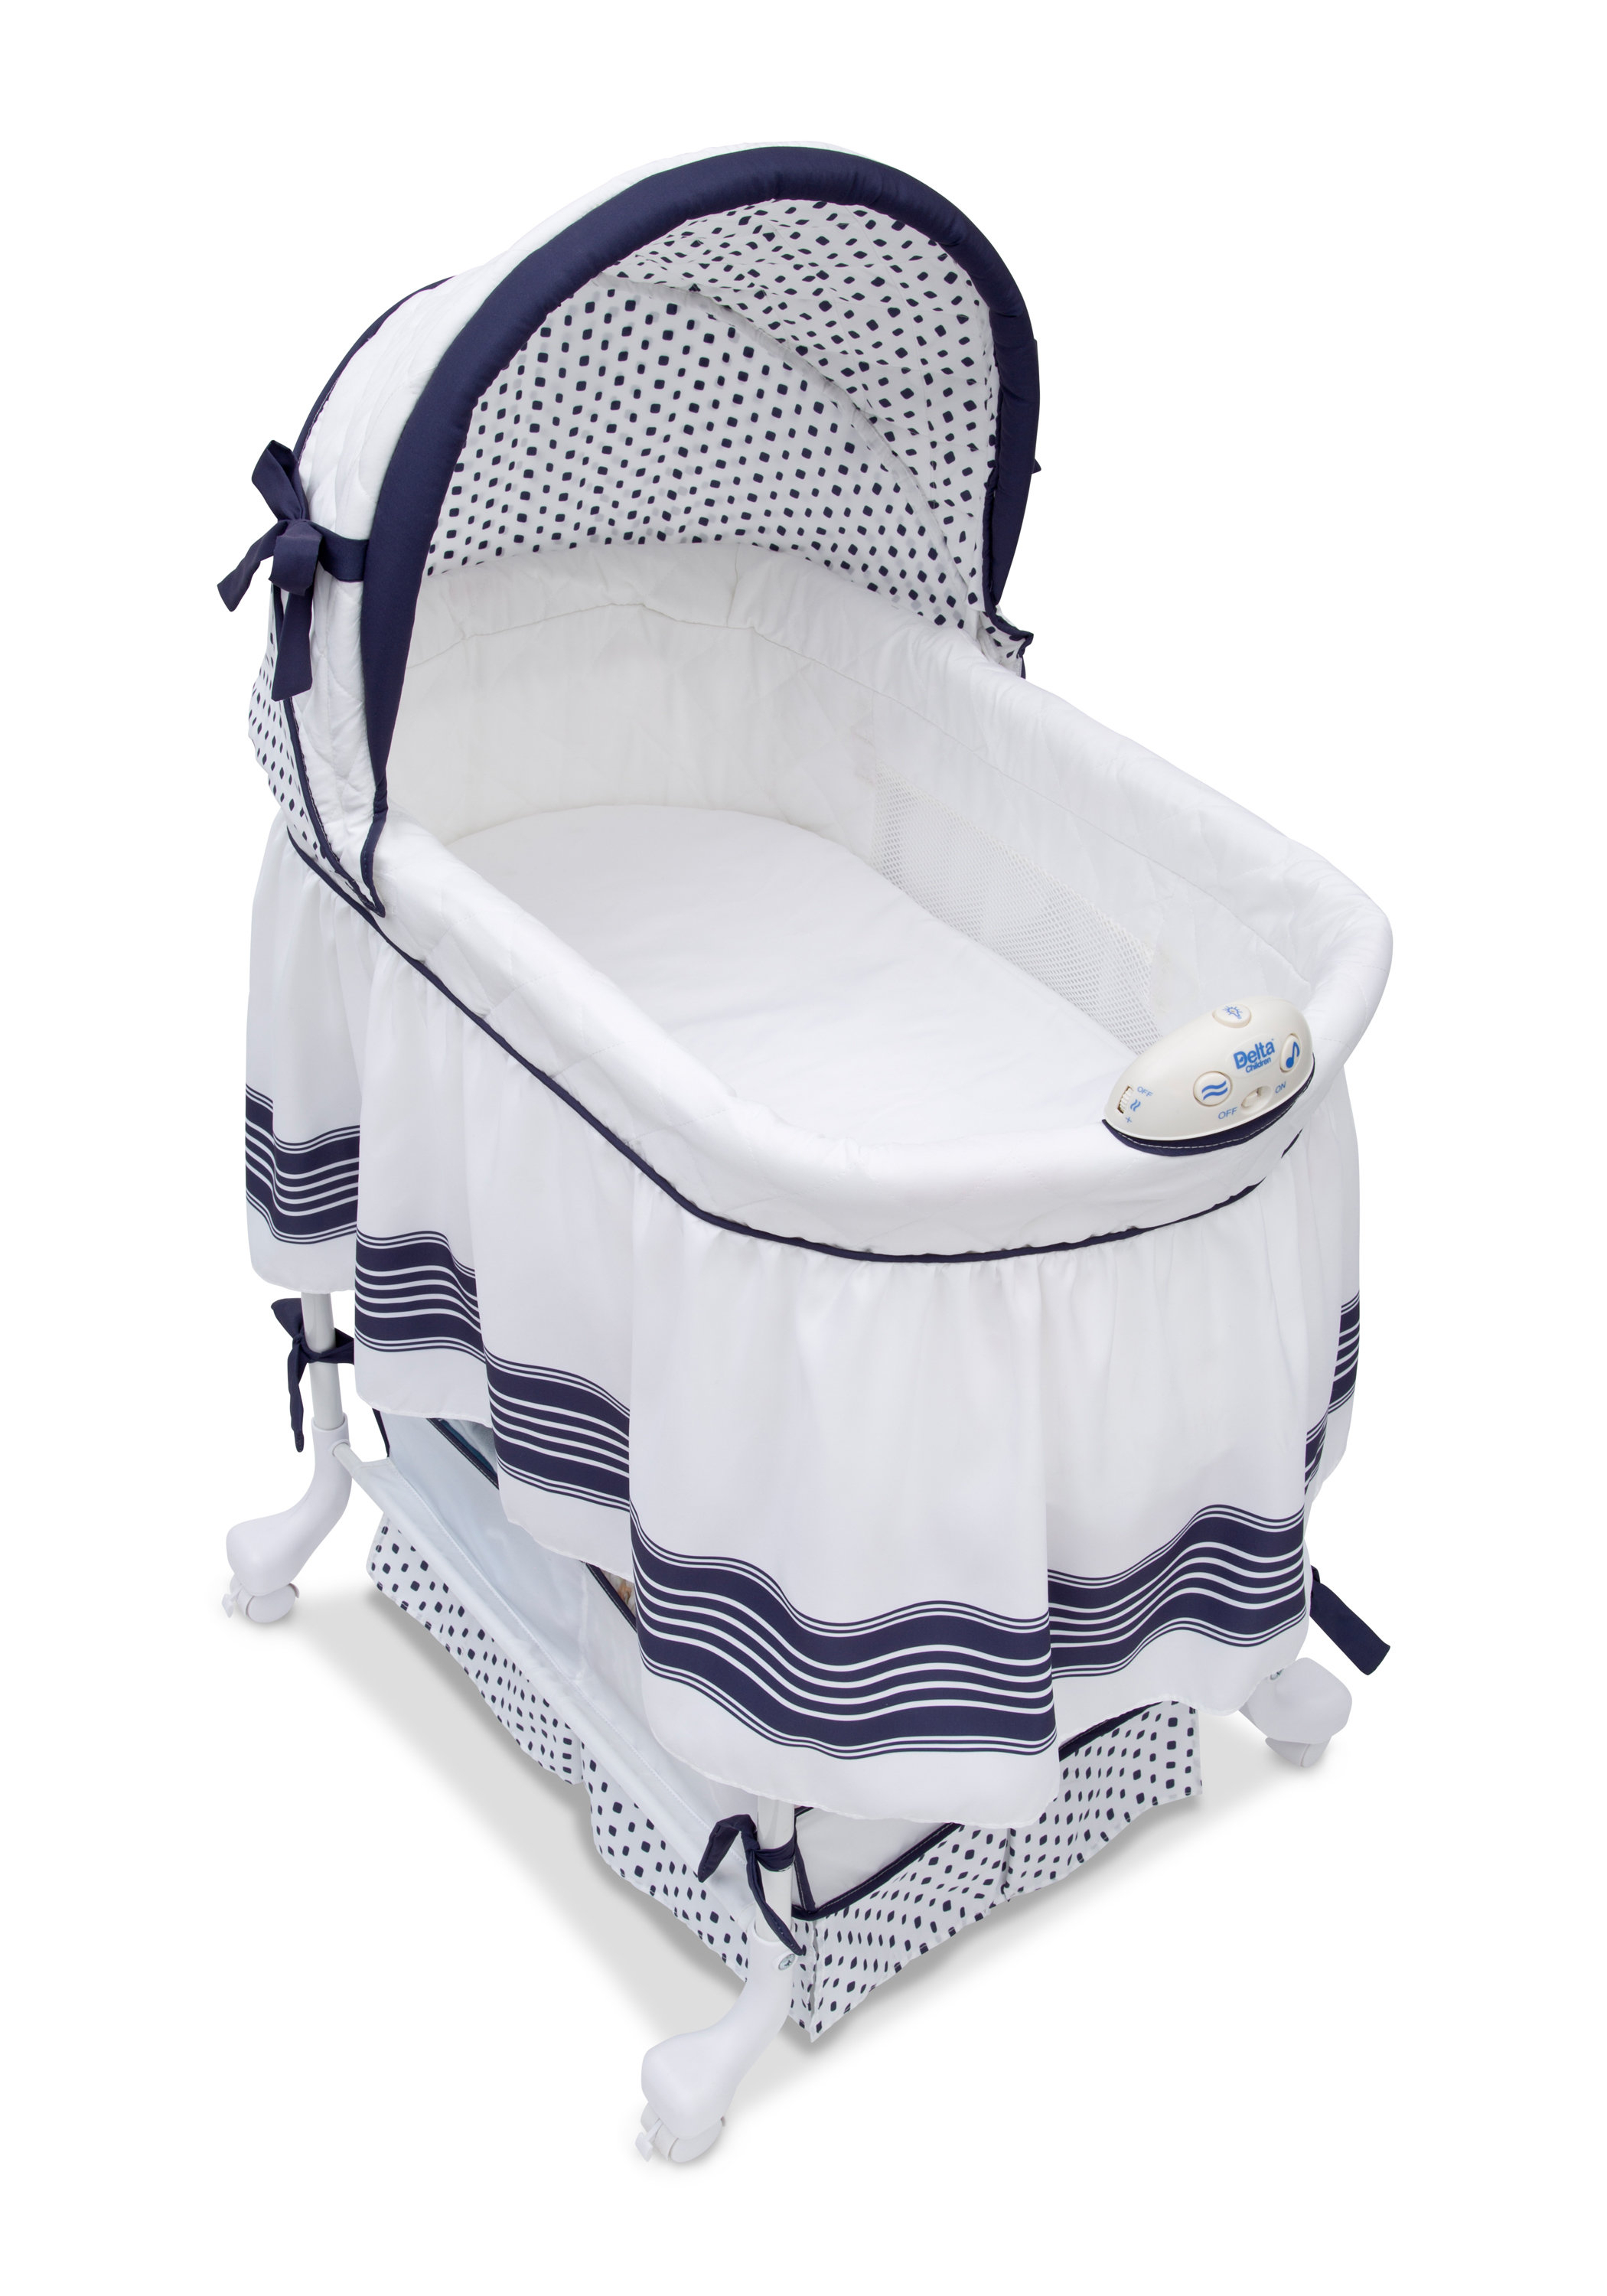 Delta Children Smooth Glide Bassinet & Reviews | Wayfair With Regard To Bailey Mist Track Arm Skirted Swivel Gliders (Image 12 of 25)